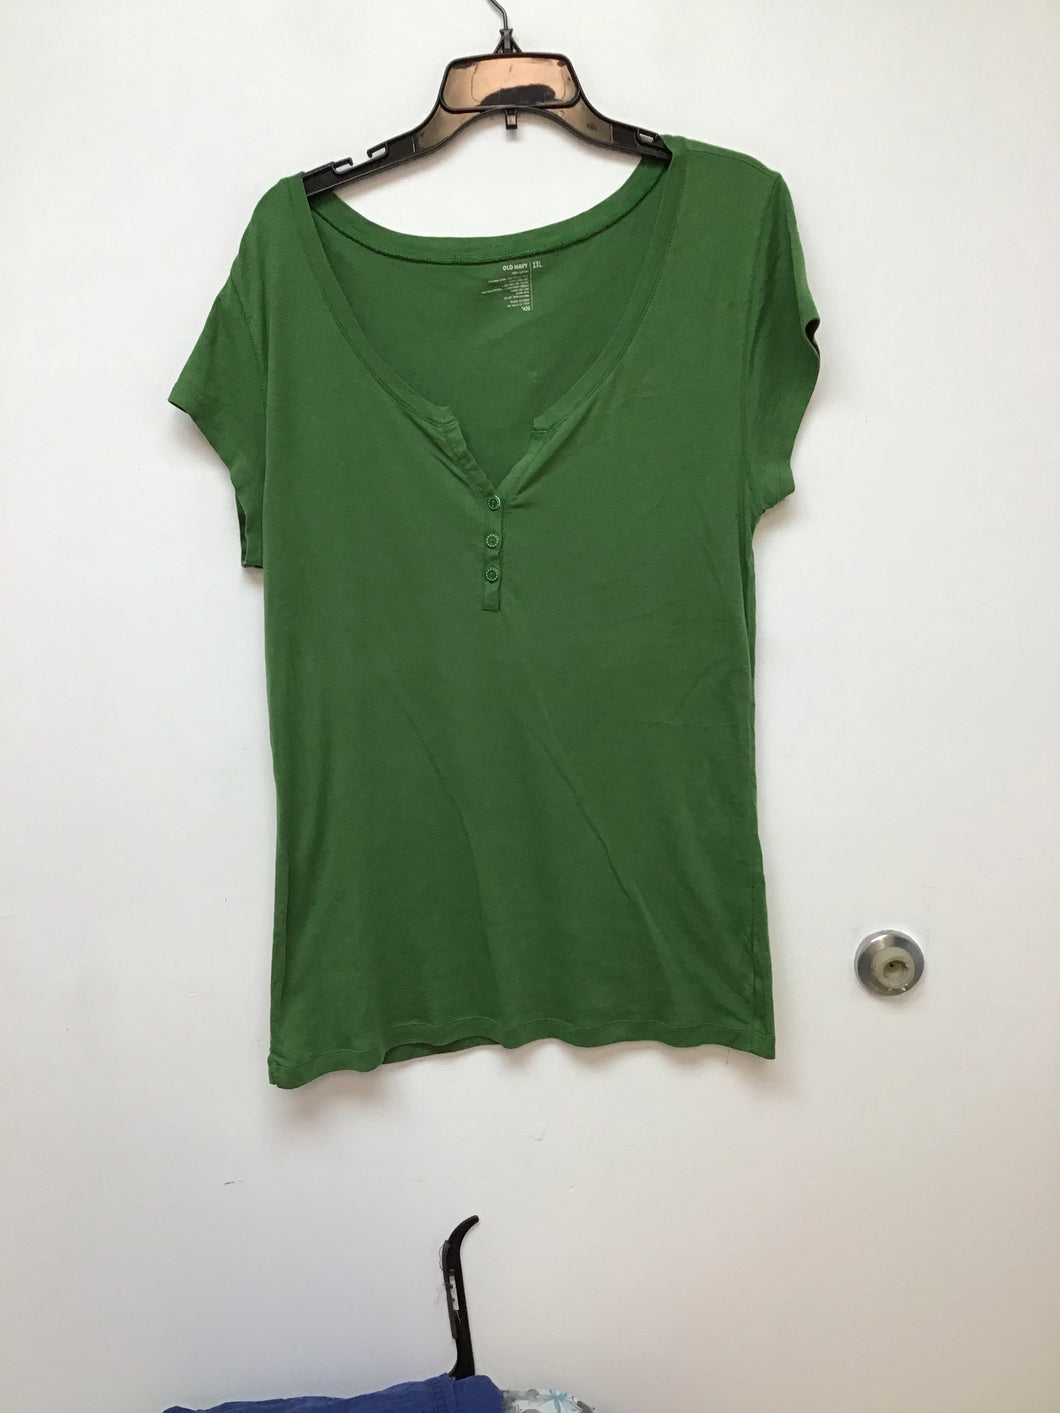 Old Navy olive green top size XXL